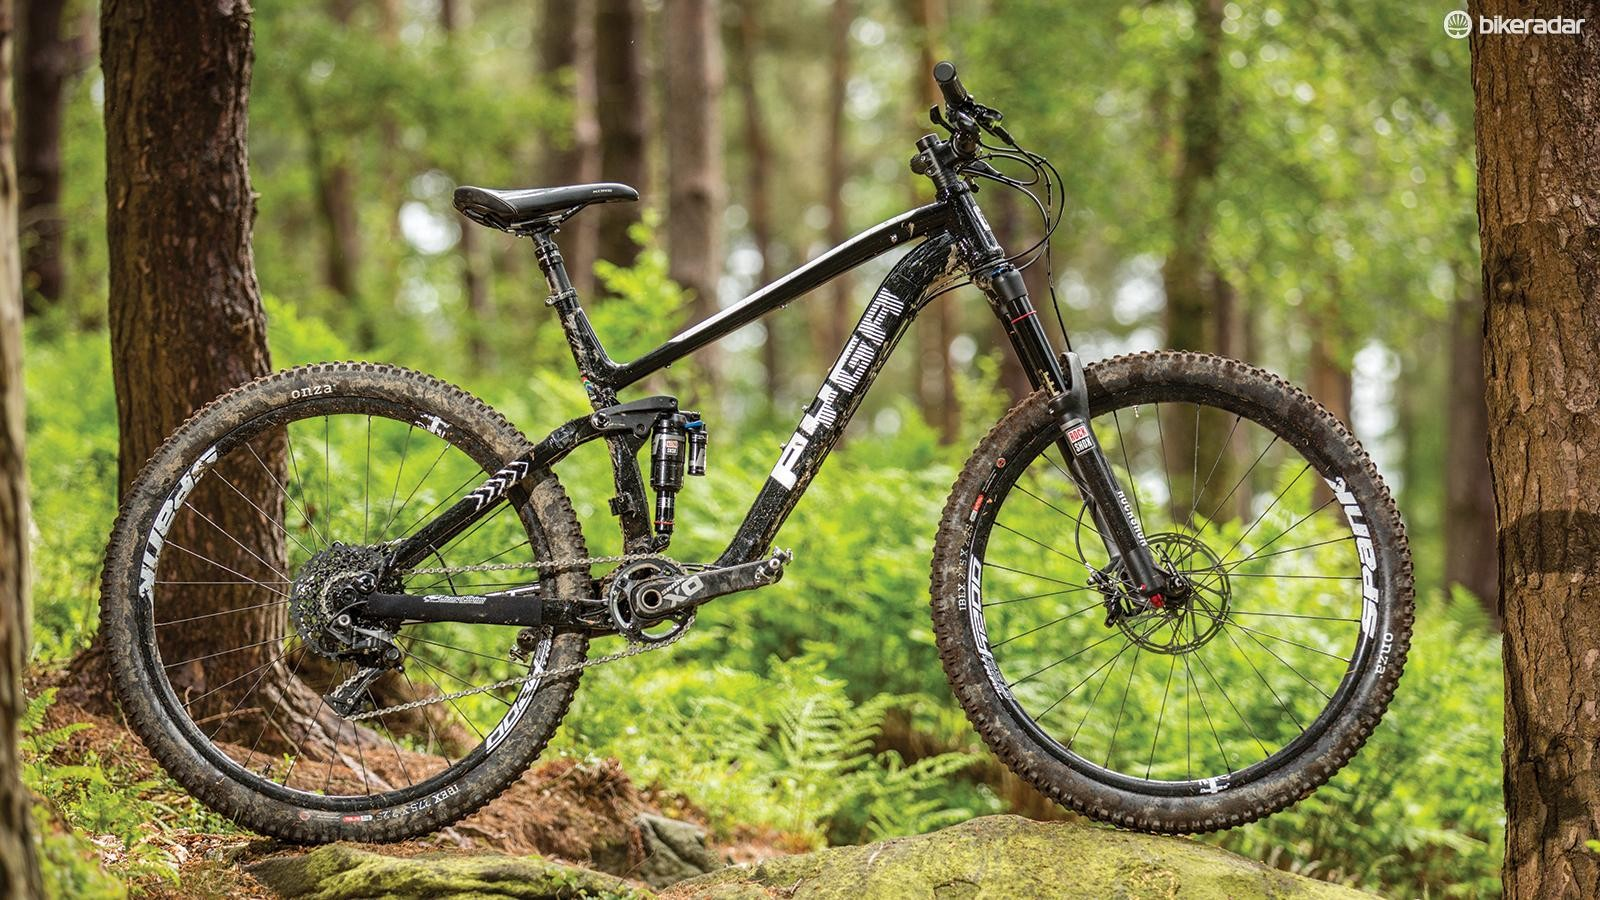 Pyga's OneForty650 Pascoe X01 is a hooligan on the descents –don't let its stealthy looks fool you